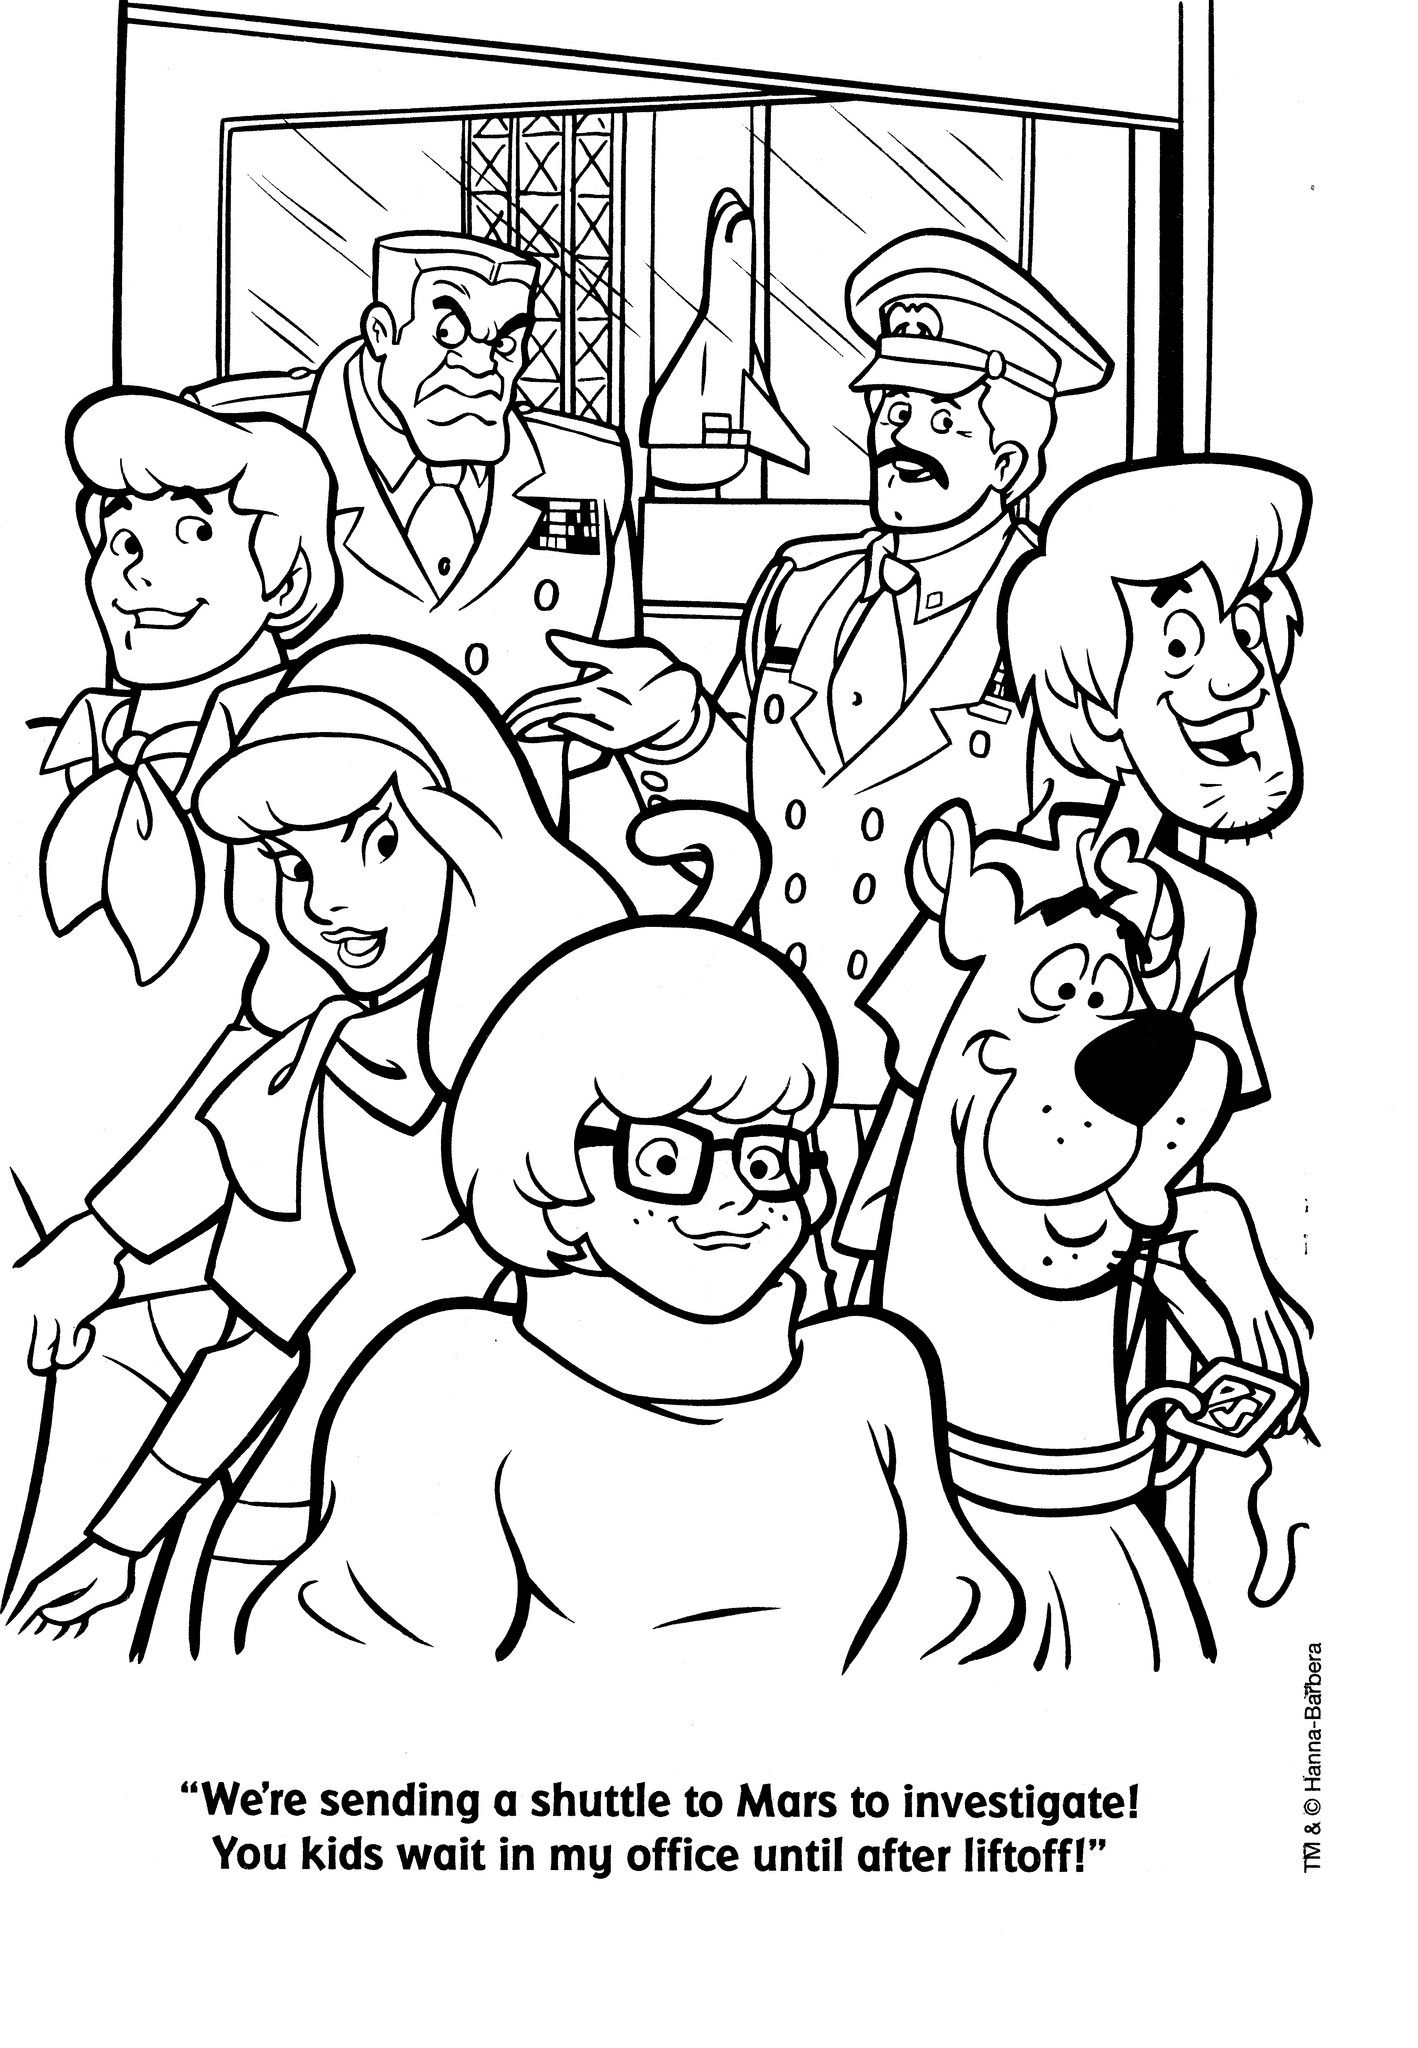 scooby doo pictures to print scooby doo coloring pages print scooby pictures doo to